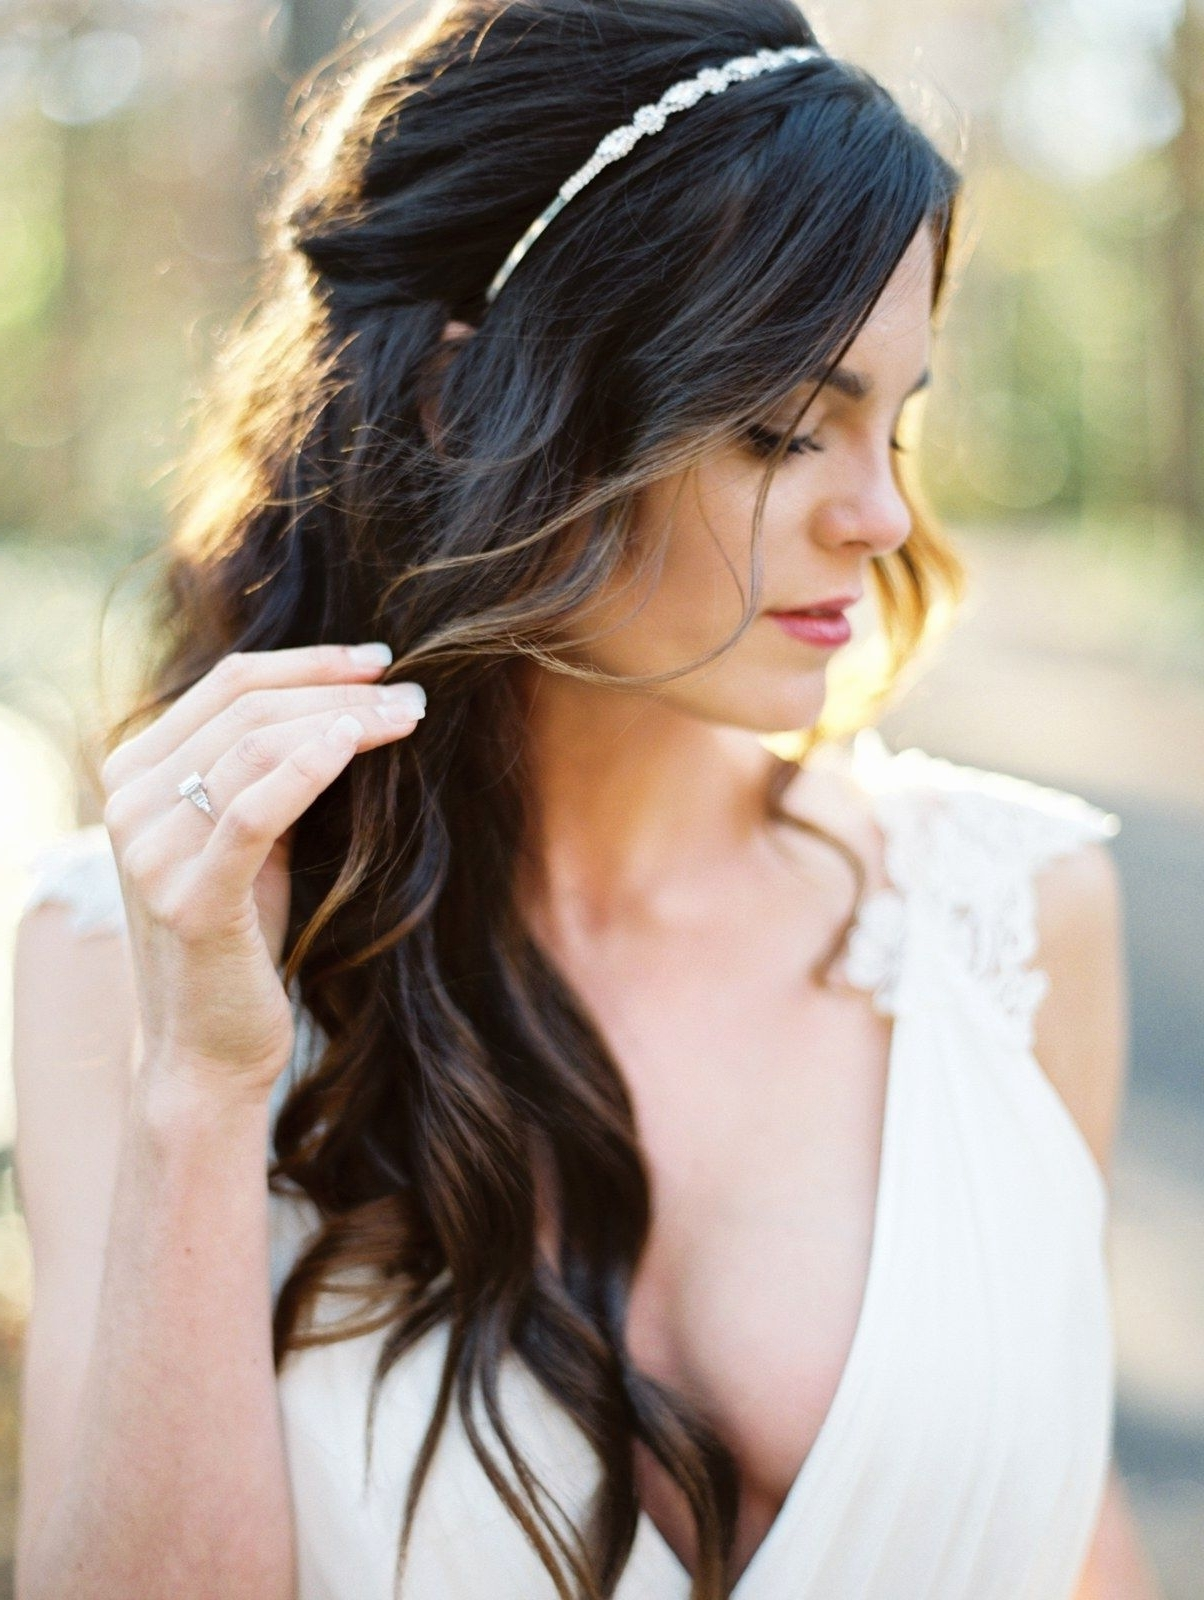 Well Liked Beach Wedding Hairstyles For Bridesmaids Within Inspiring Beach Wedding Hair Half Up Down Hairstyles Pic Of Bride (View 15 of 15)